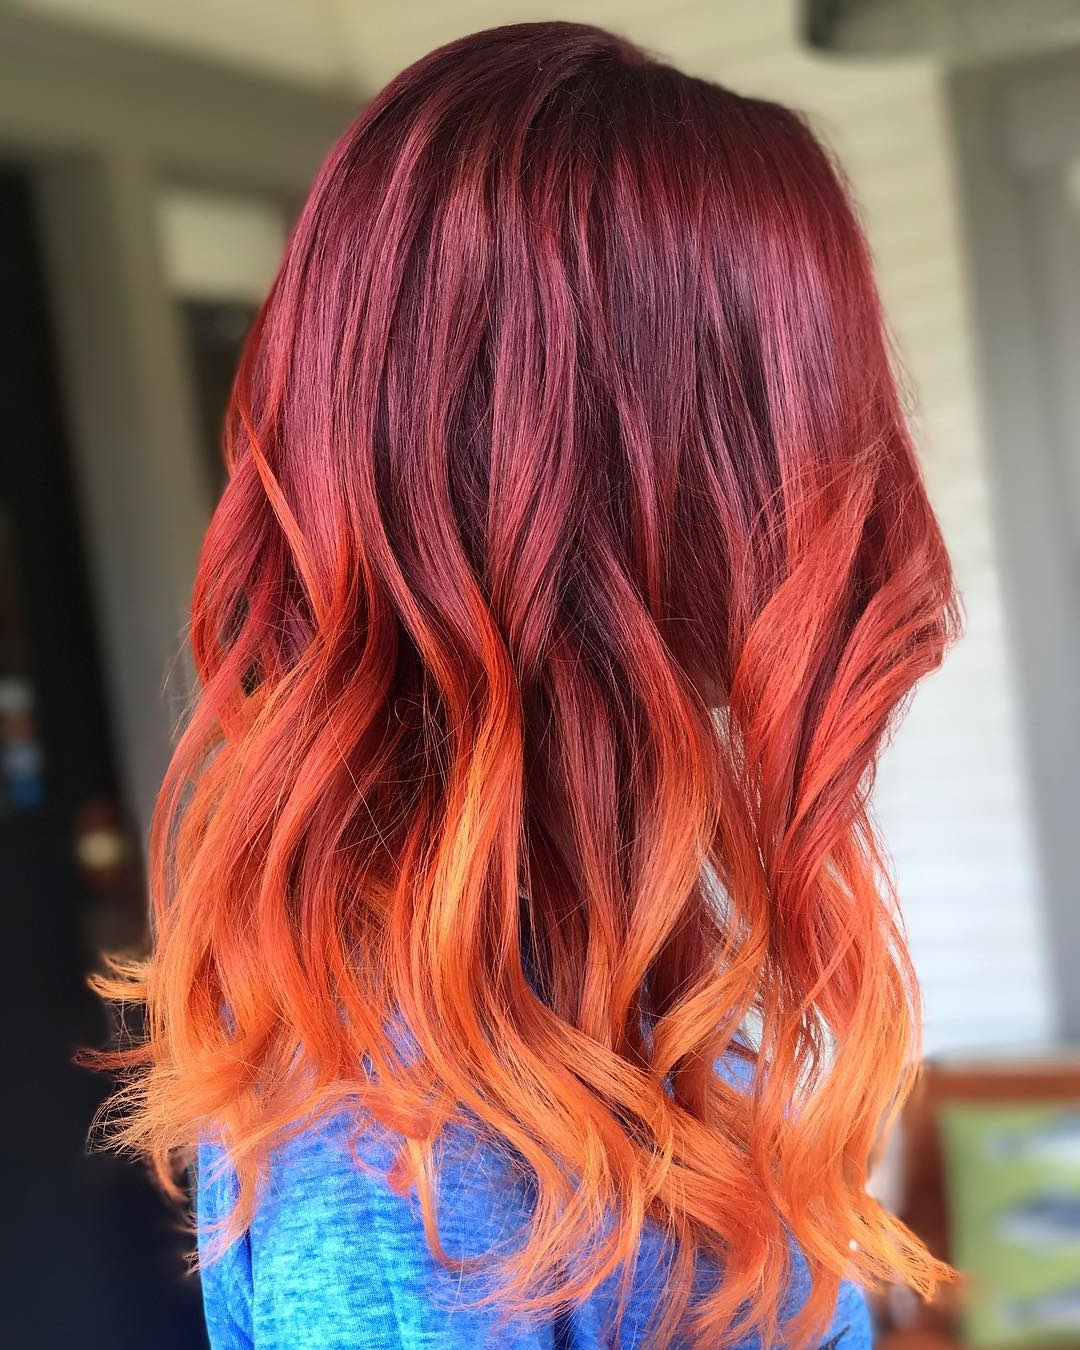 20 Radical Styling Ideas For Your Red Ombre Hair Within Widely Used Bright Red Medium Hairstyles (View 3 of 20)